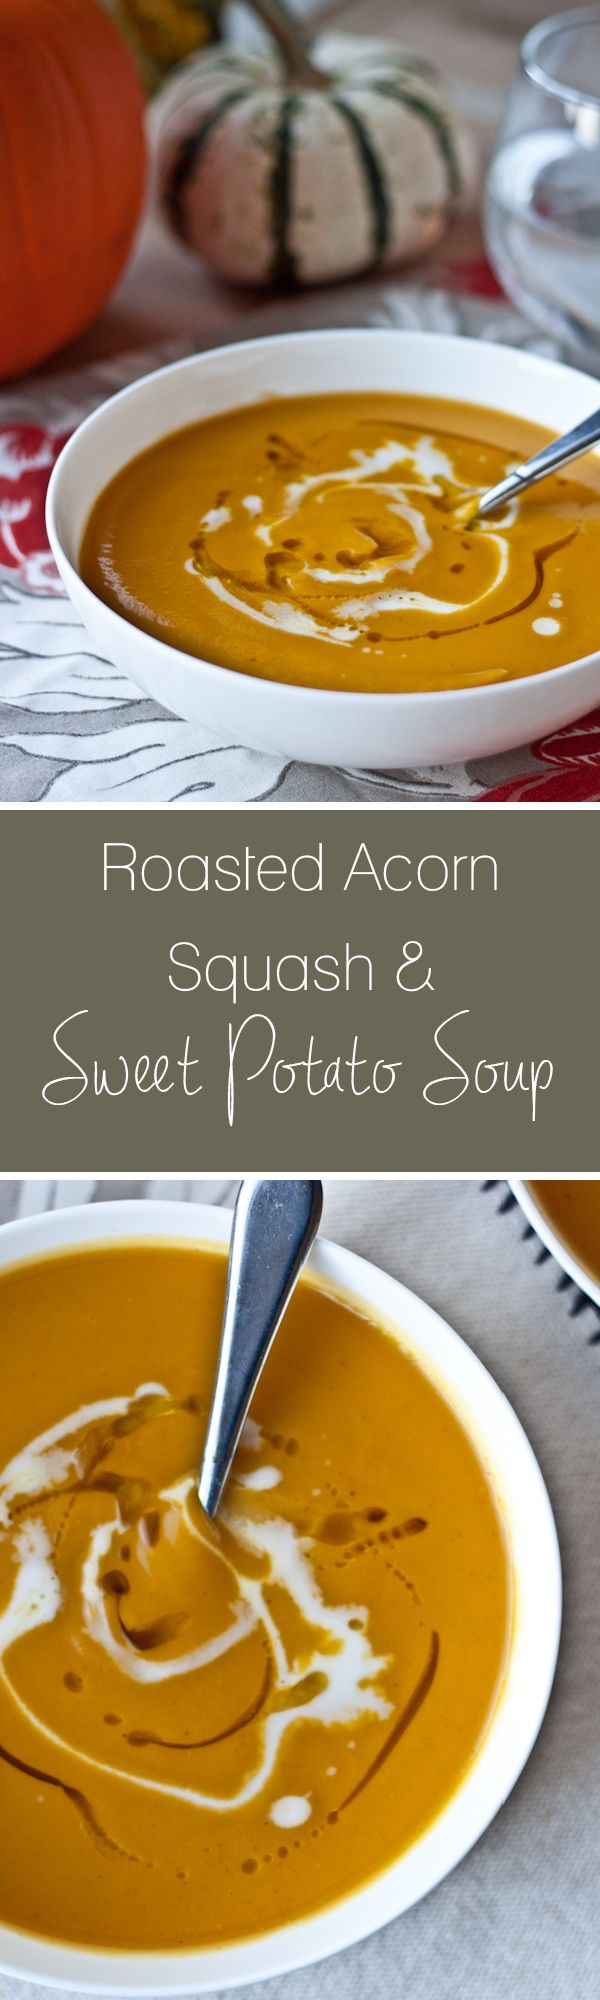 Creamy Roasted Acorn Squash and Sweet Potato Soup. An EASY soup for fall! Naturally dairy-free and vegan.